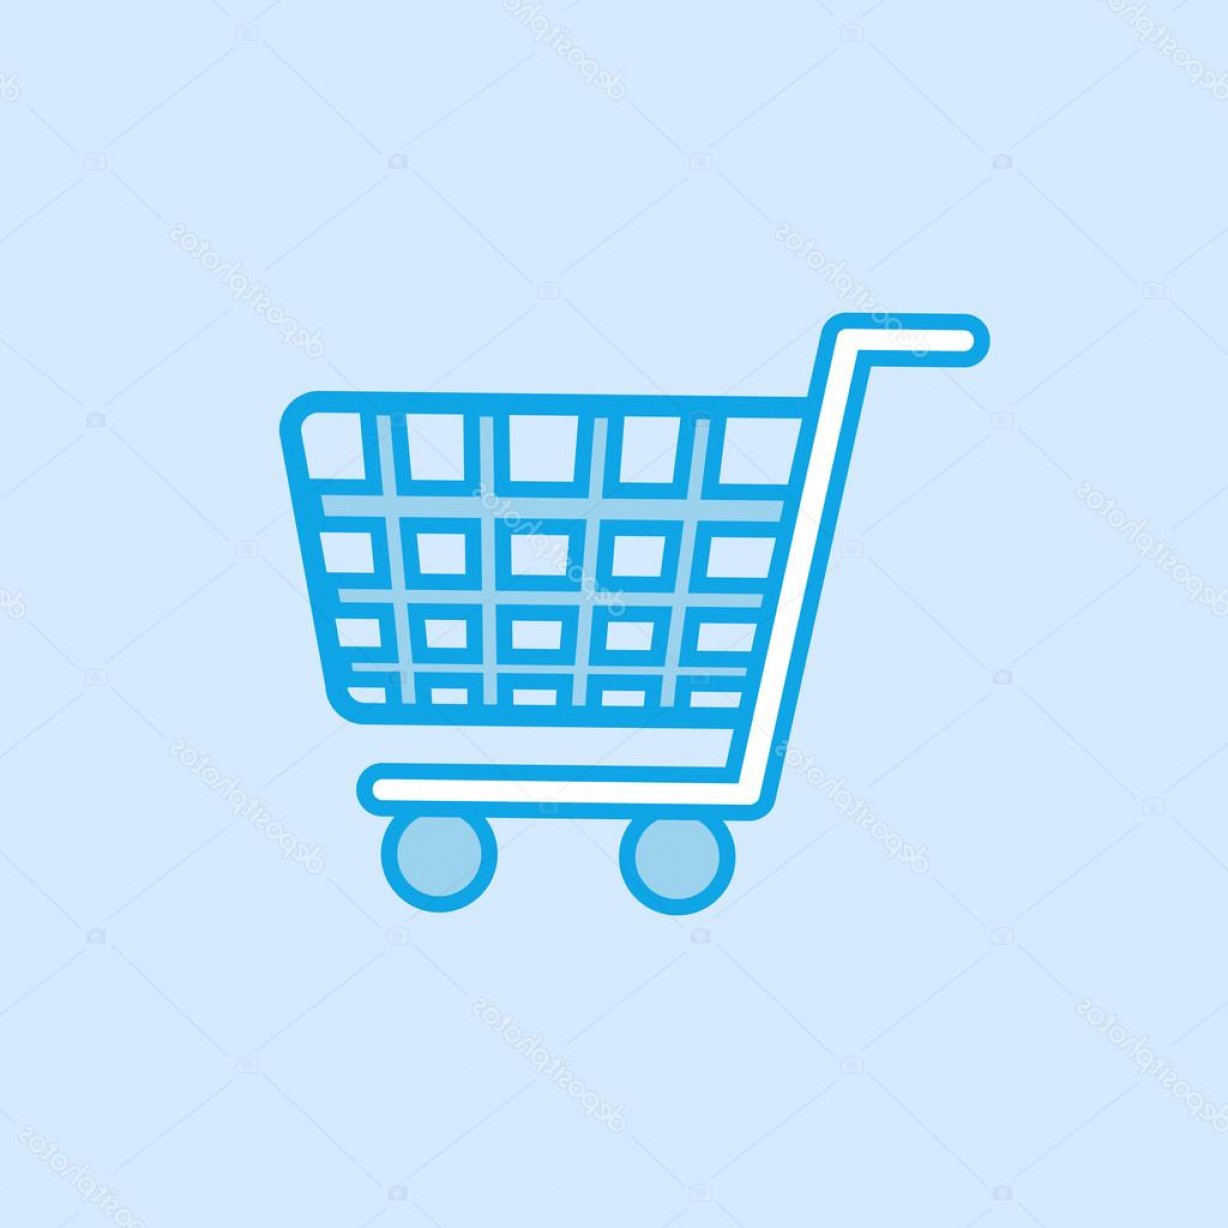 1228x1228 Stock Illustration Shopping Trolley Vector Icon Simple Shopatcloth